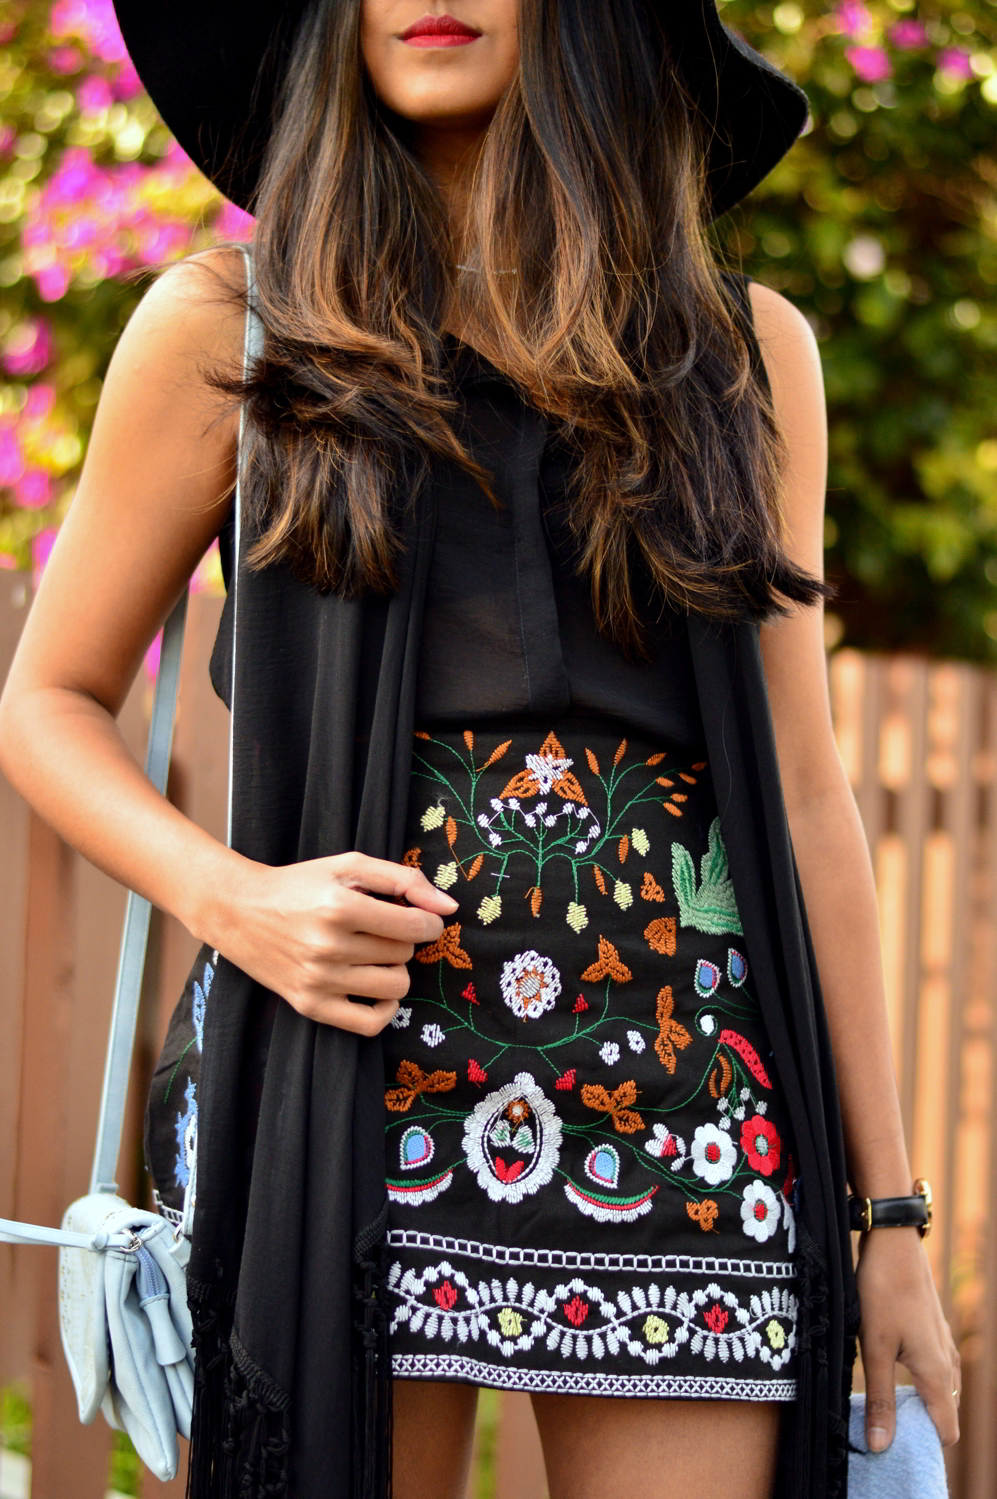 embroidered-skirt-fringe-blouse-winter-layers-blogger-outfit-california 3